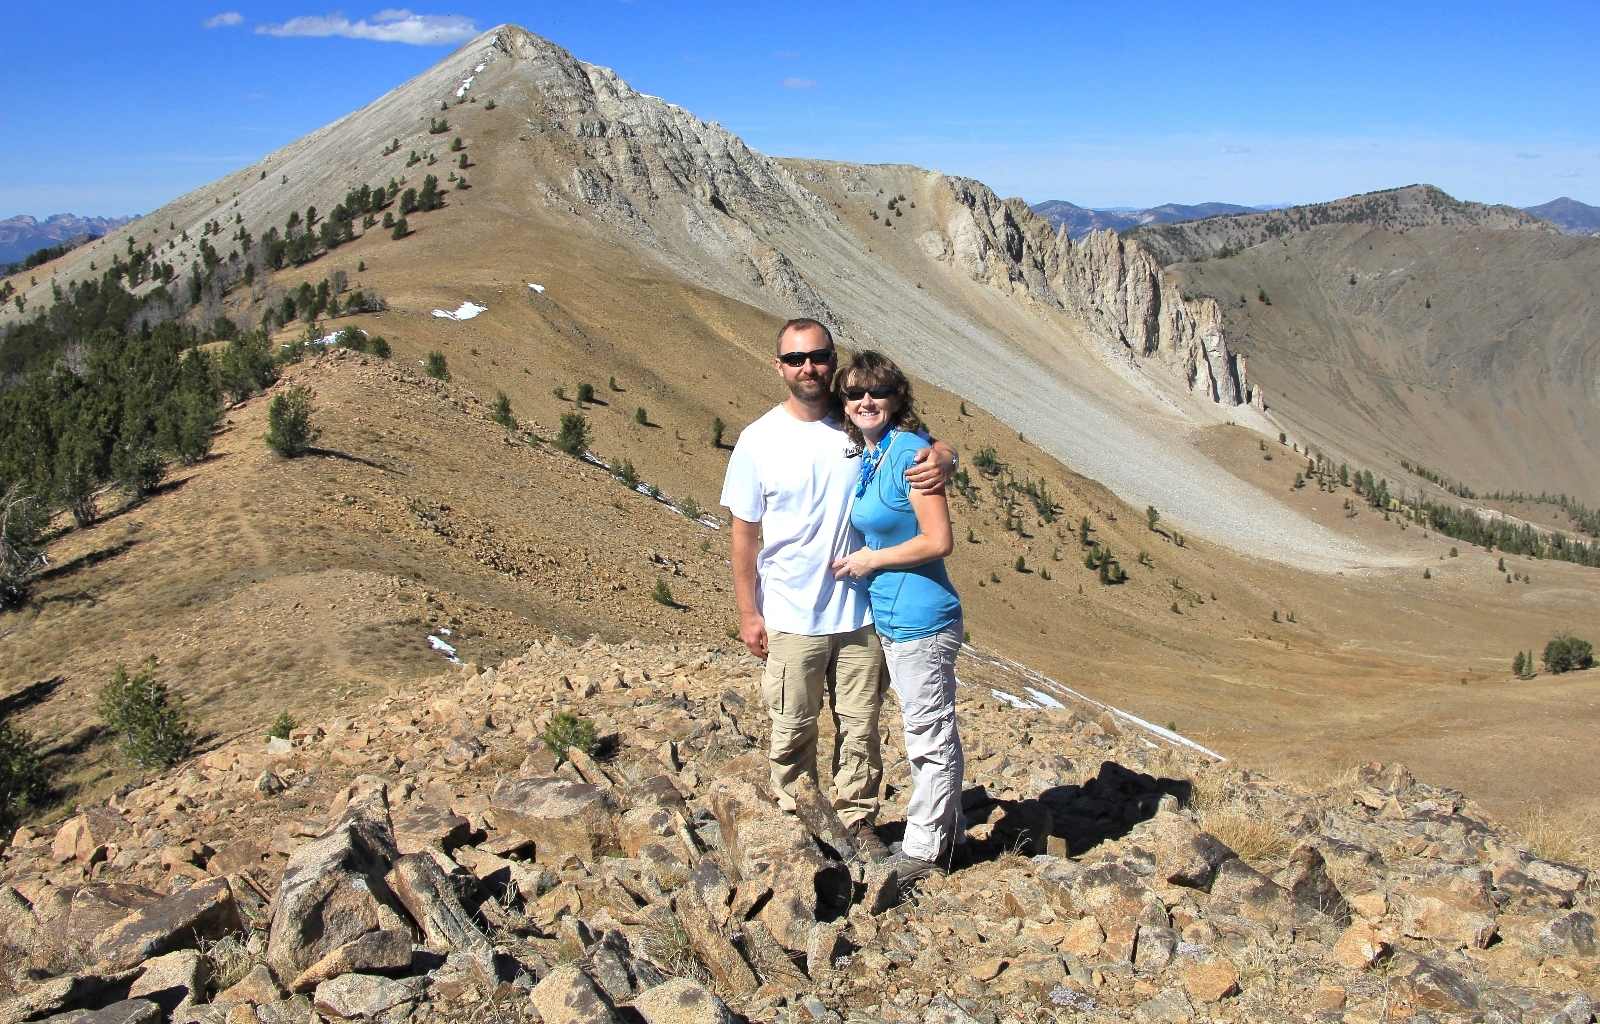 09-22-15 Born Lakes ridgeline hike (124)